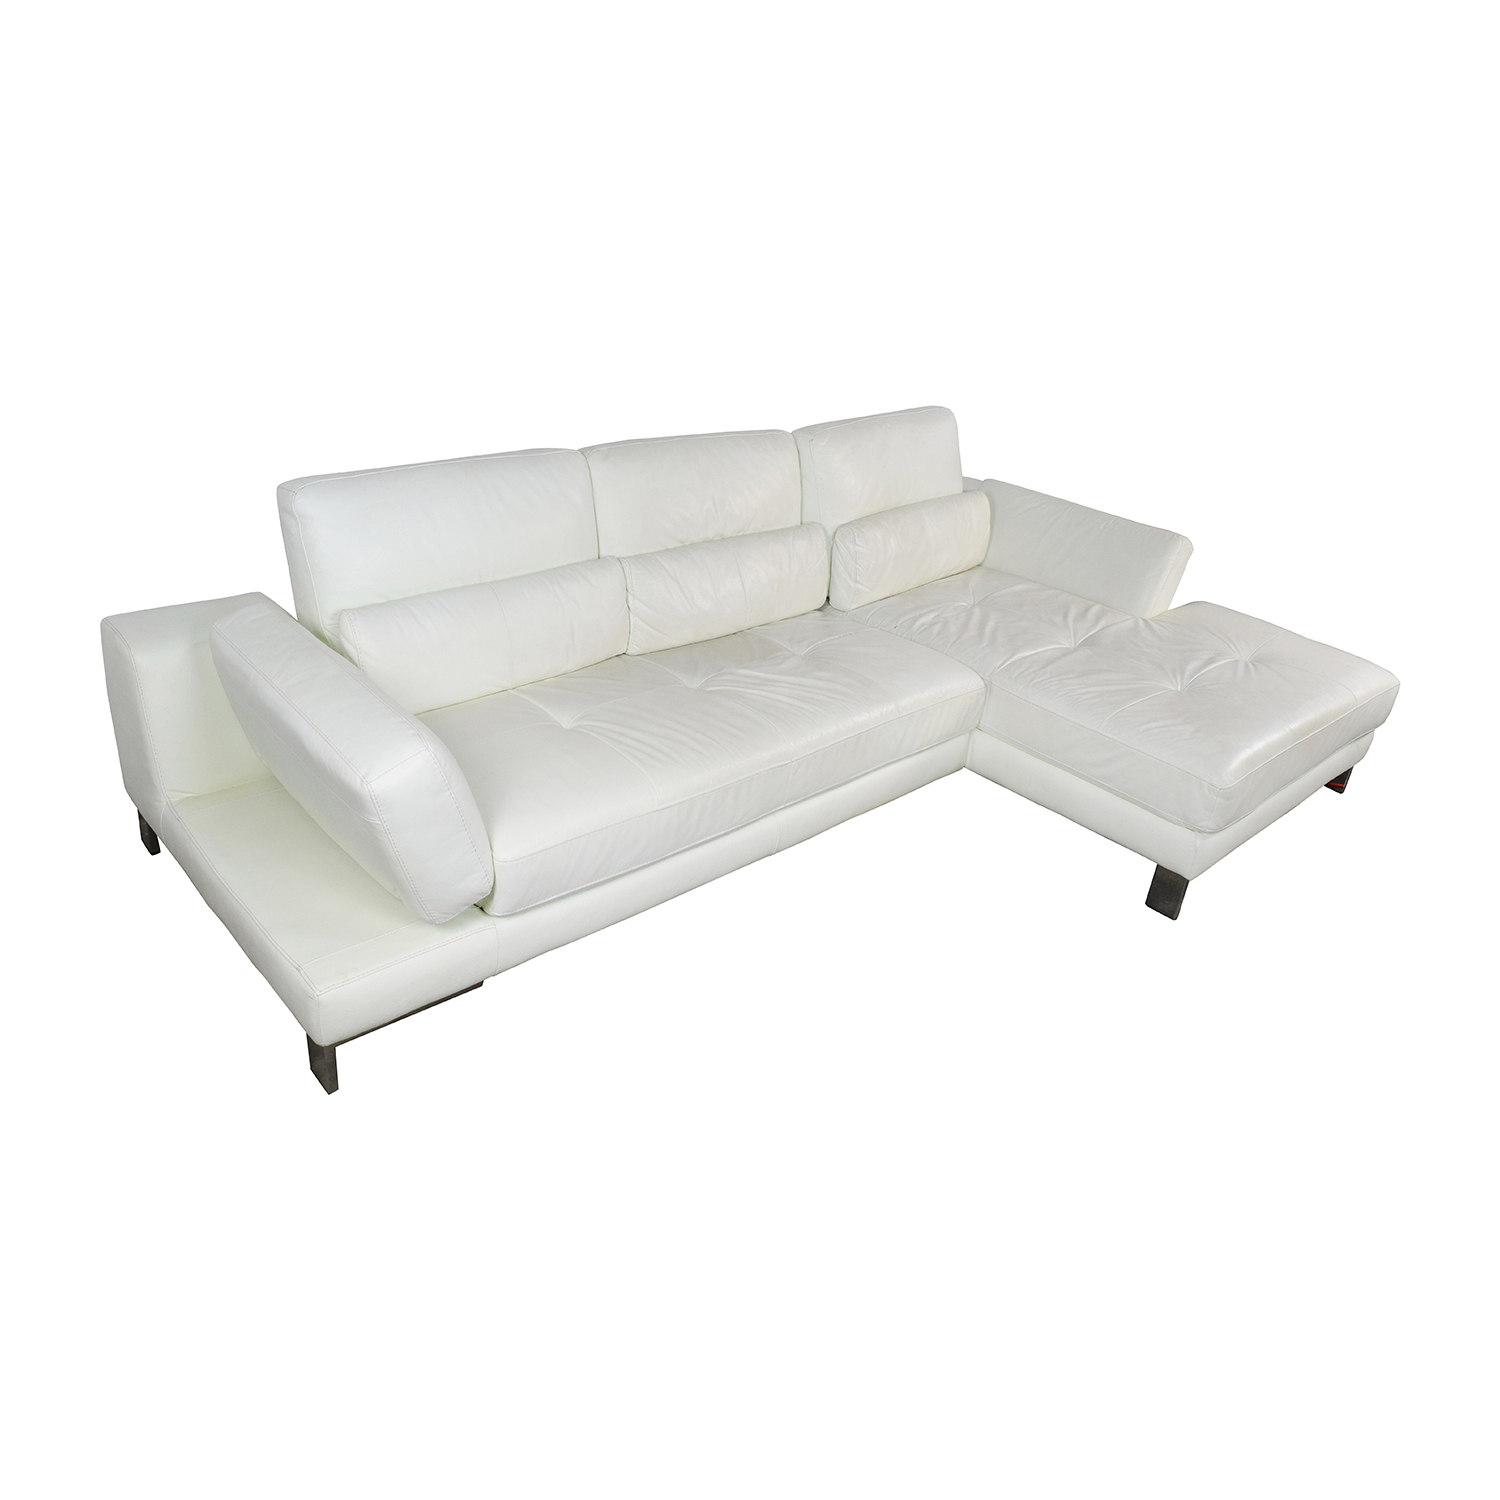 72% OFF Mobilia Canada Mobilia Canada Funktion White Leather